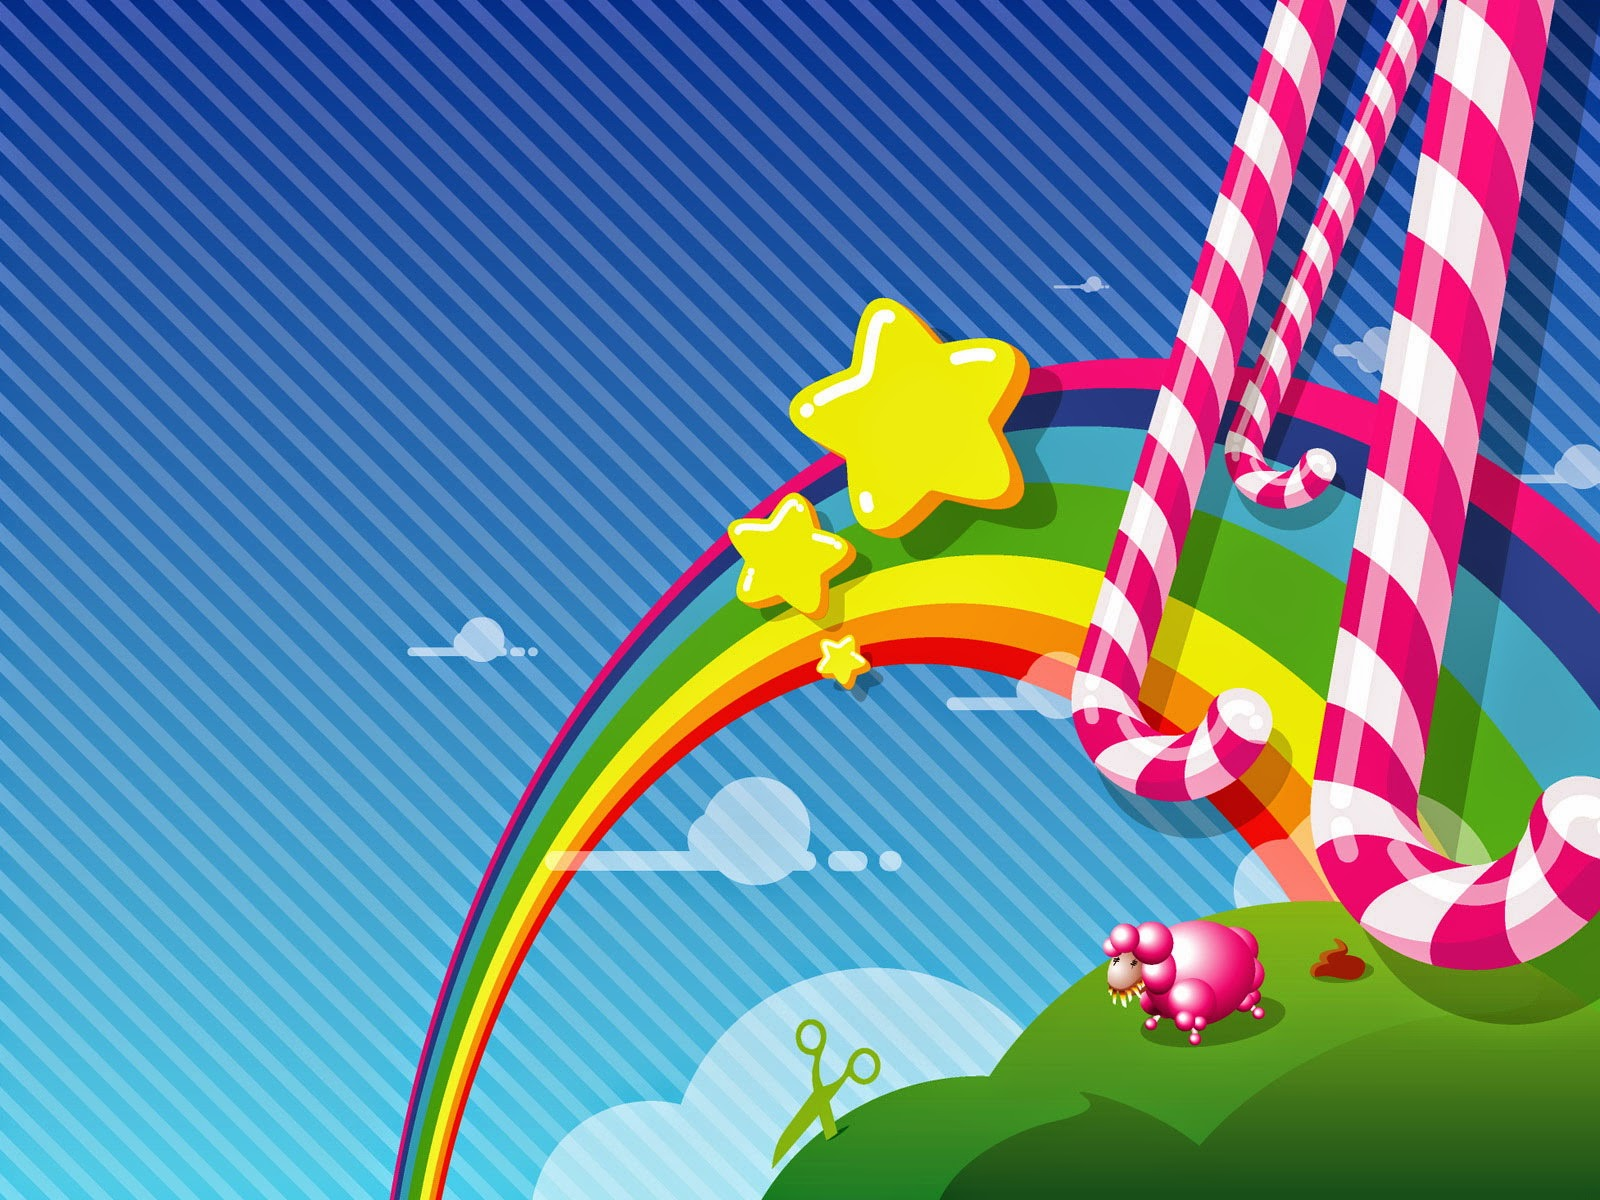 Abstract Candy hd wallpaper